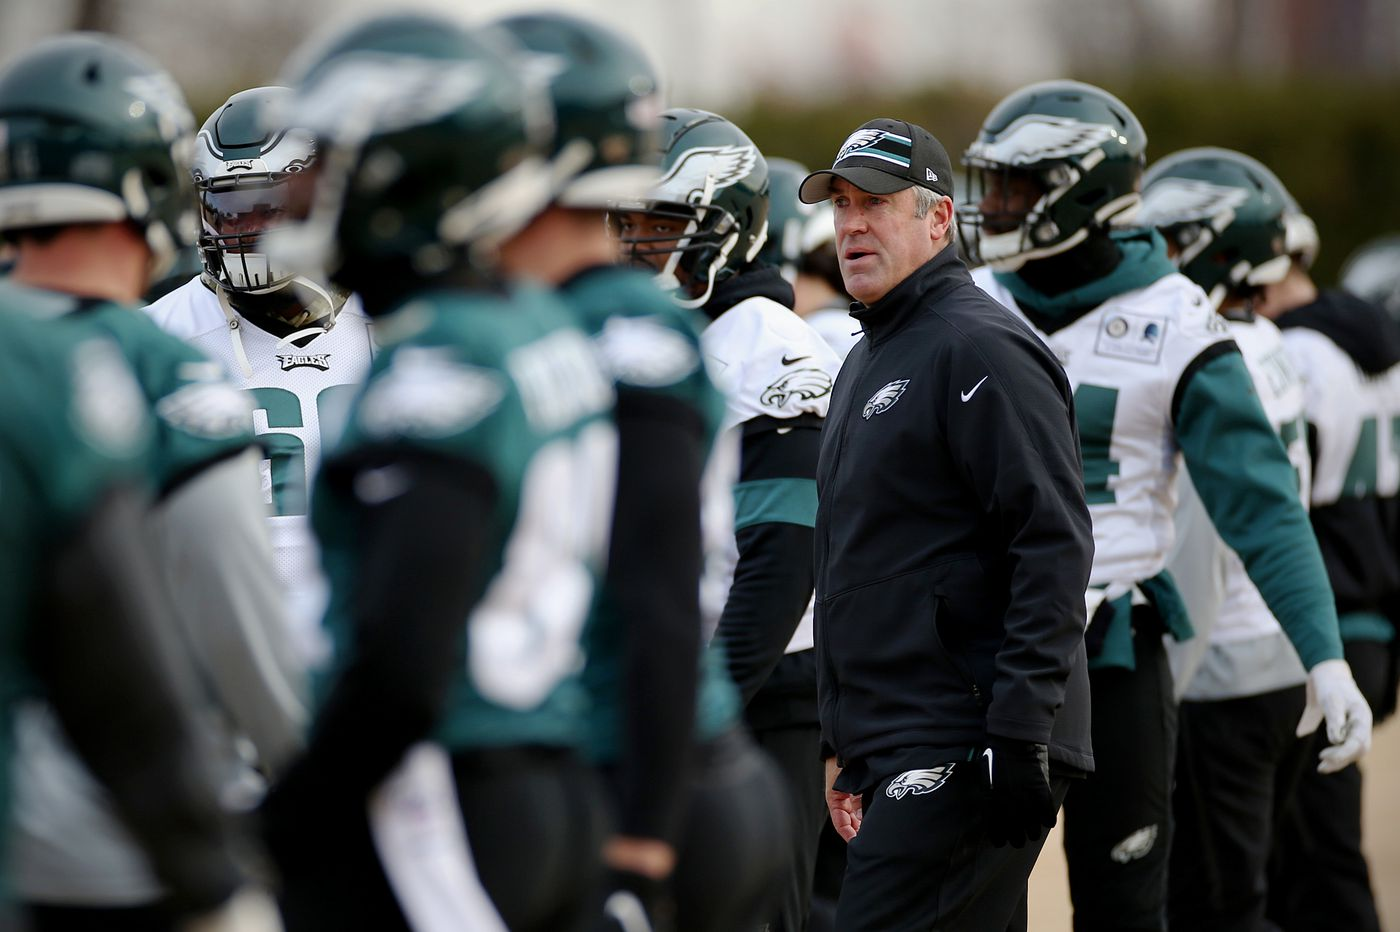 Eagles podcast: Key takeaways from Doug Pederson's Zoom call